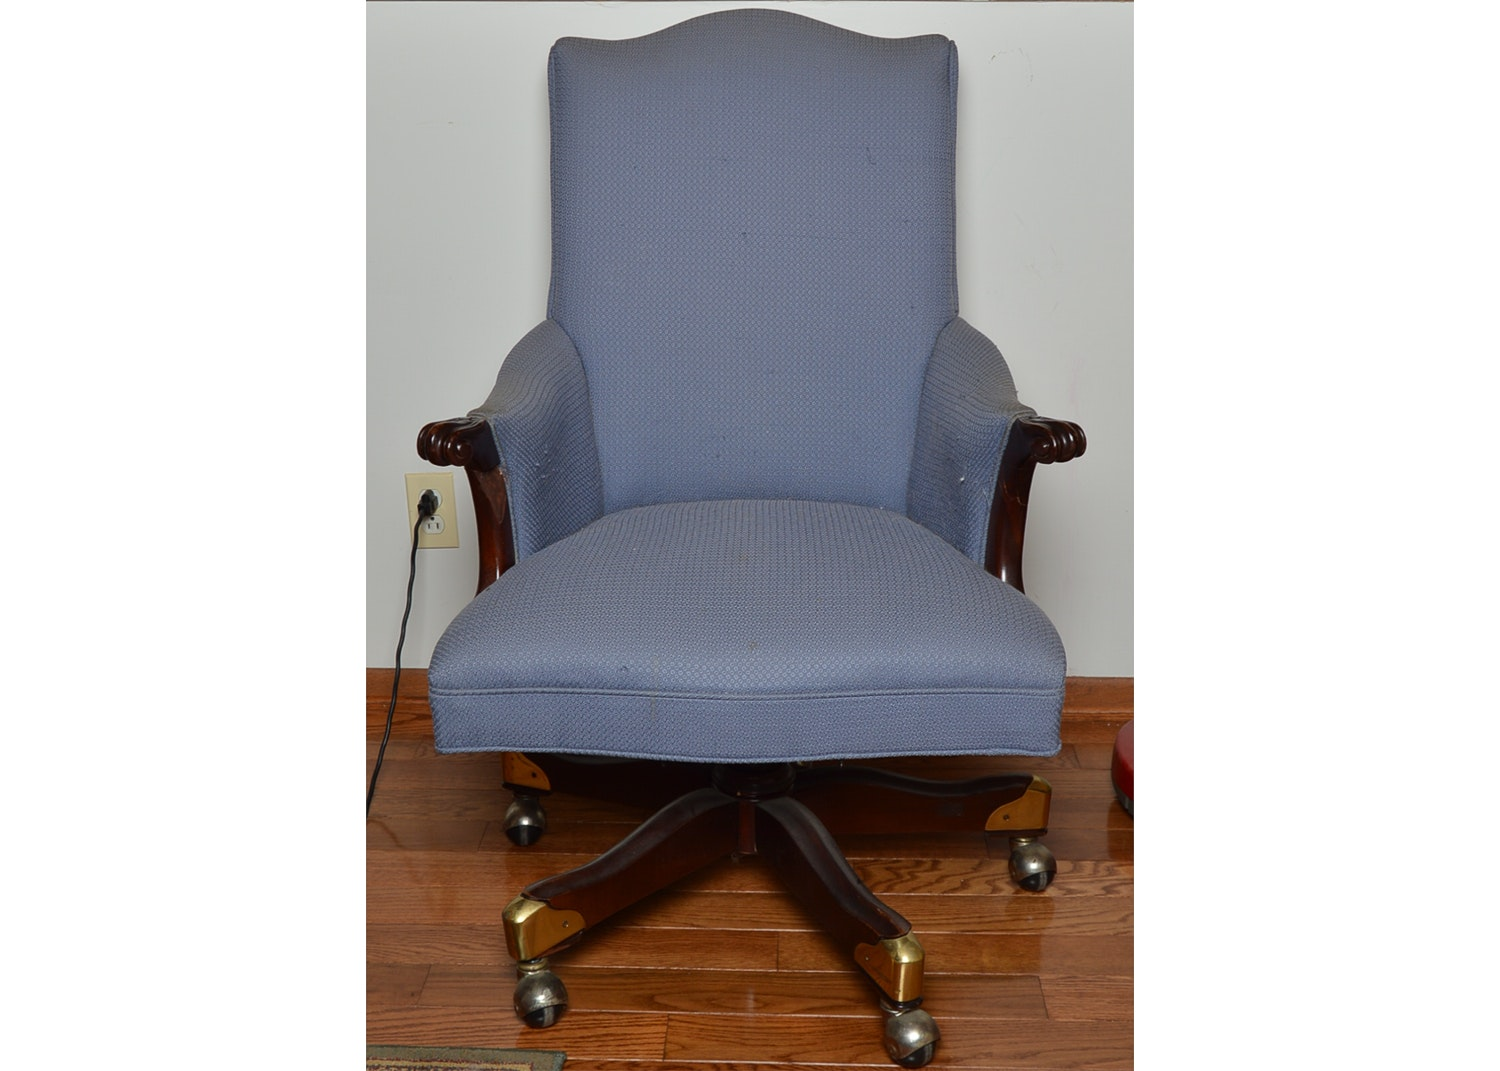 Upholstered Rolling Office Chair by Bernhardt